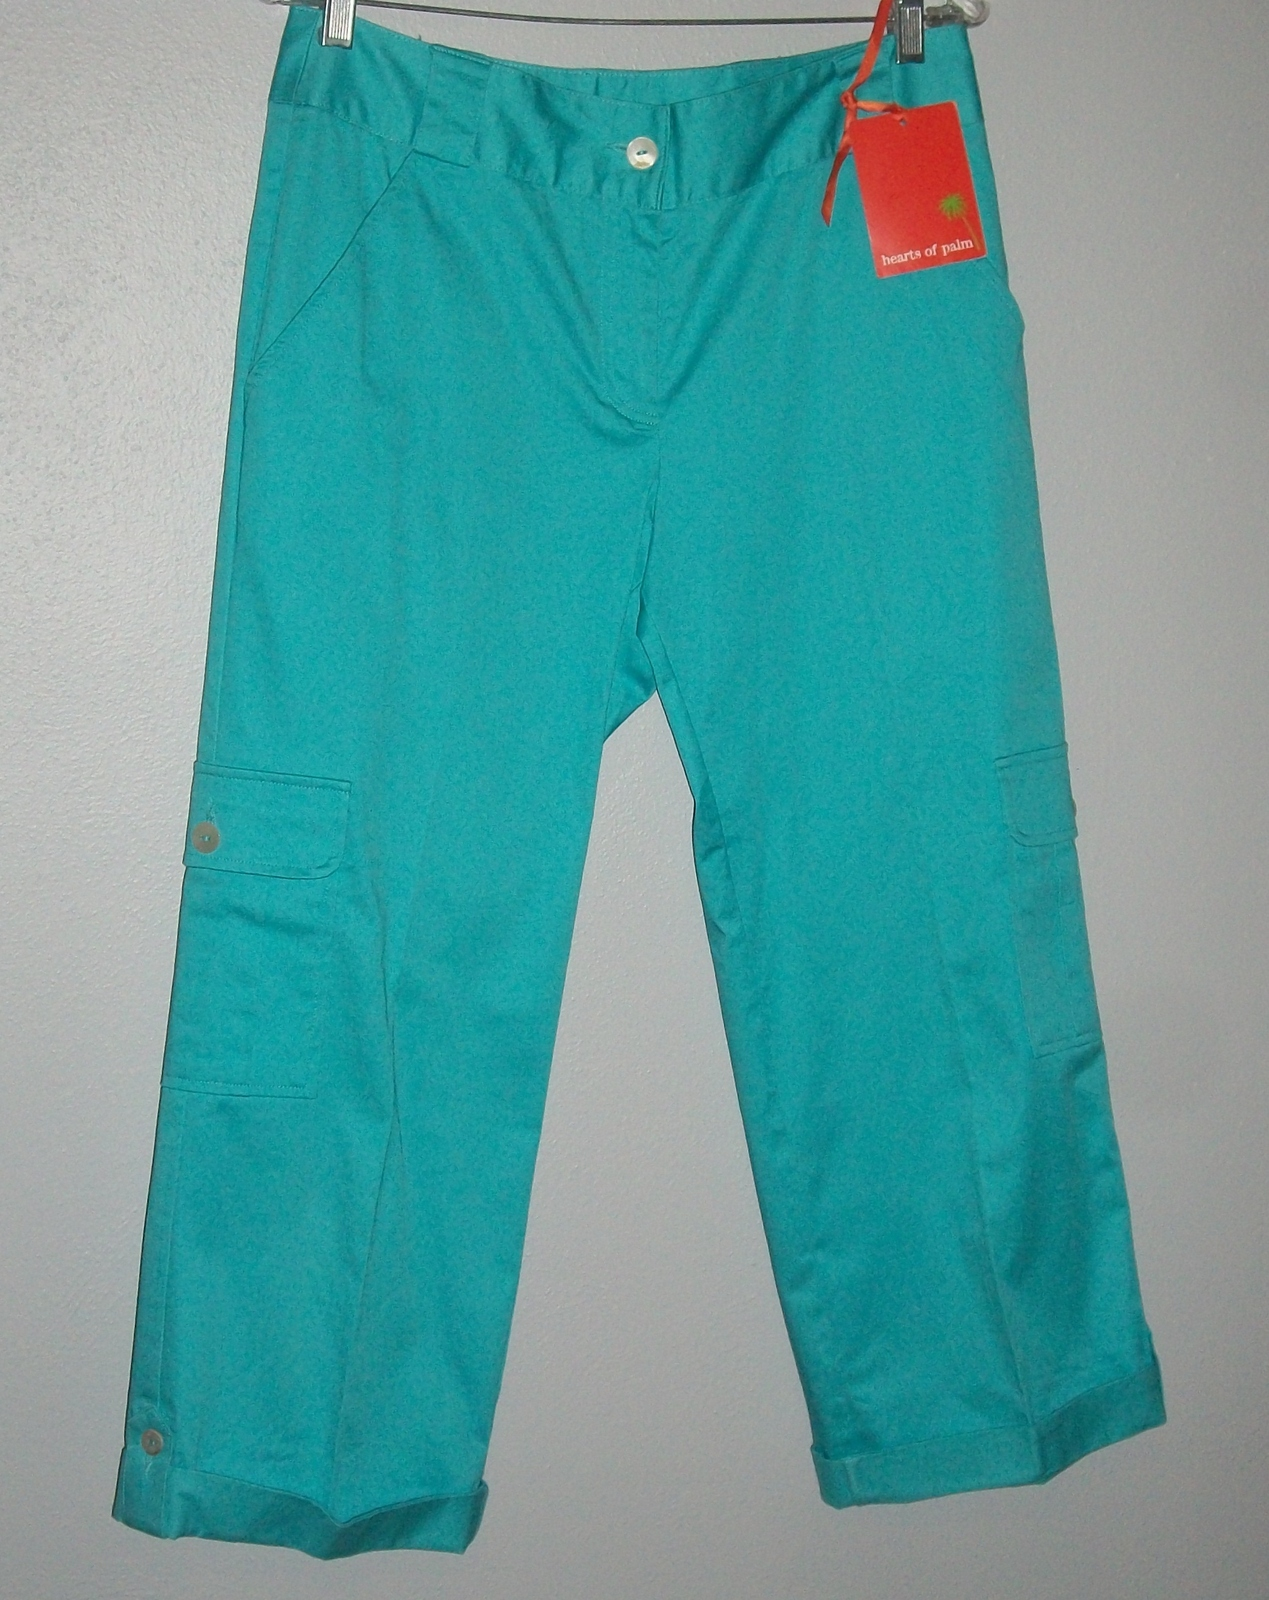 Primary image for HEARTS OF PALM TURQUOISE CAPRI PANTS NWT! Sz 8